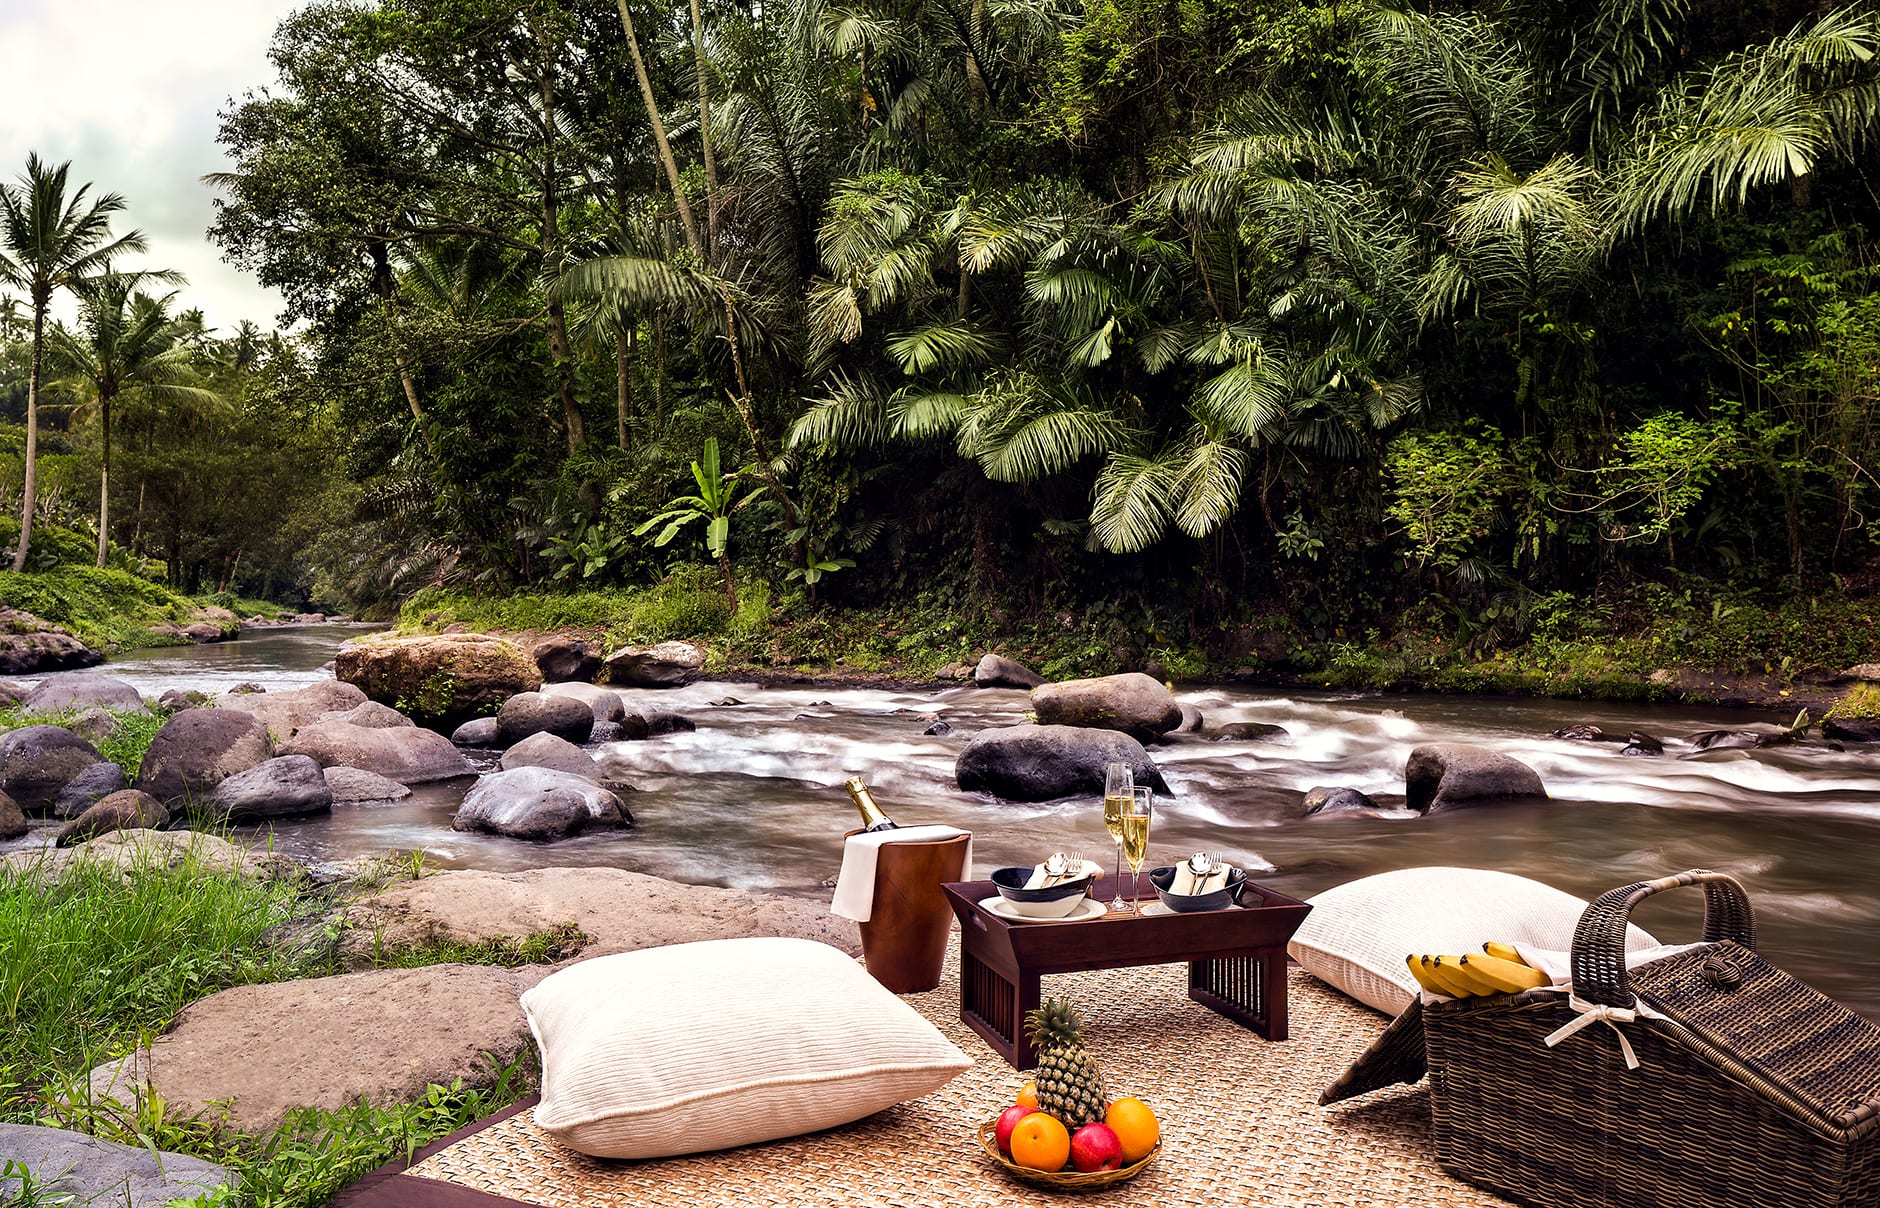 Dining Beyond. Mandapa, a Ritz-Carlton Reserve, Ubud, Indonesia. © The Ritz-Carlton Hotel Company